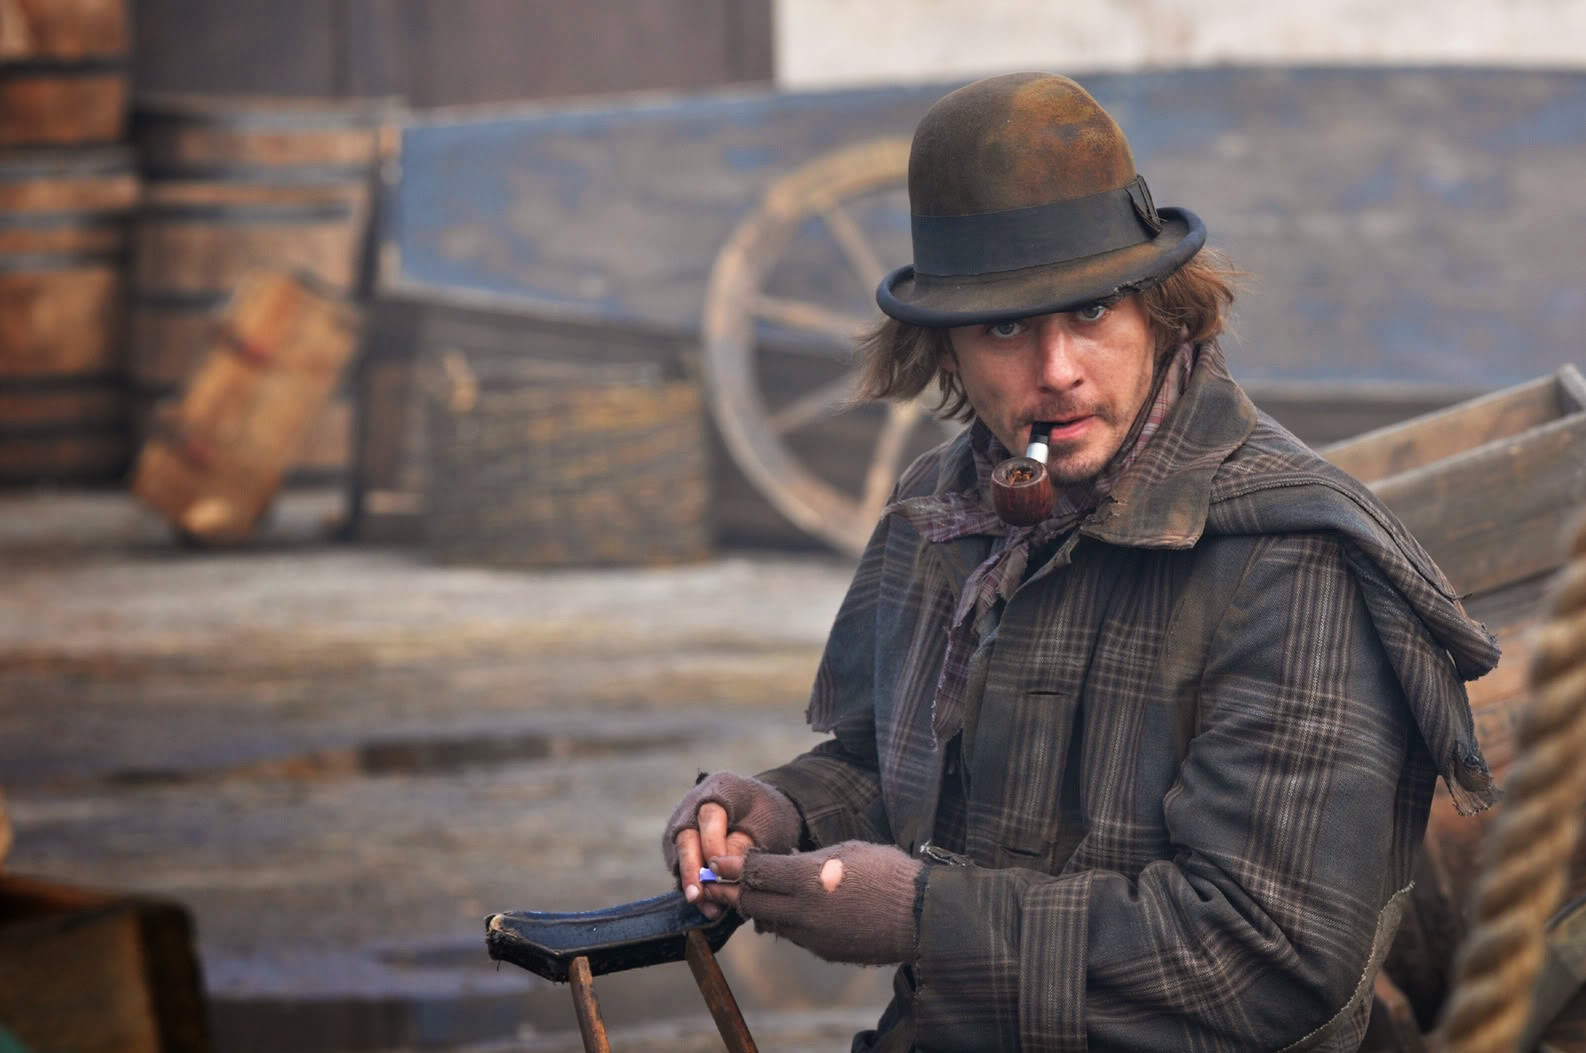 Russian Sherlock Holmes in disguise in the new Russian Sherlock Holmes 2013 TV Series